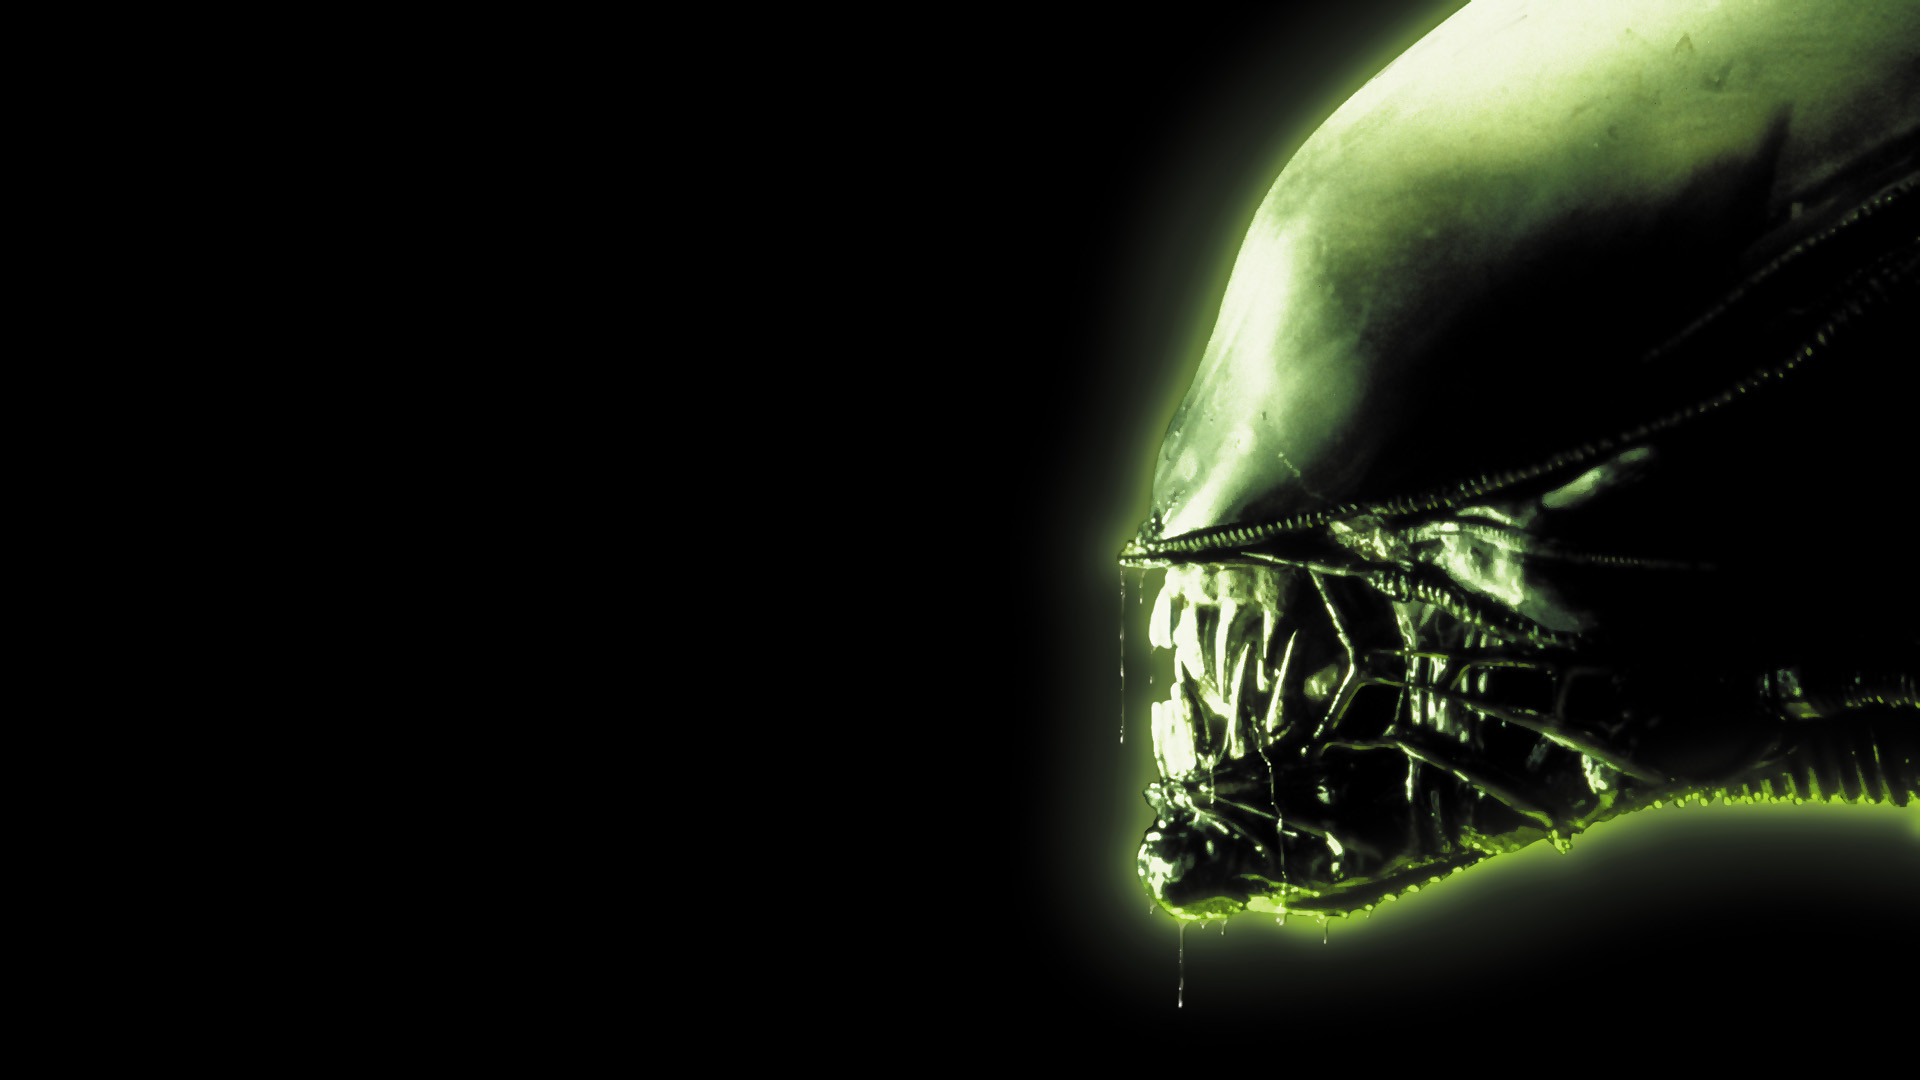 Alien Attack Wallpapers 1920x1080